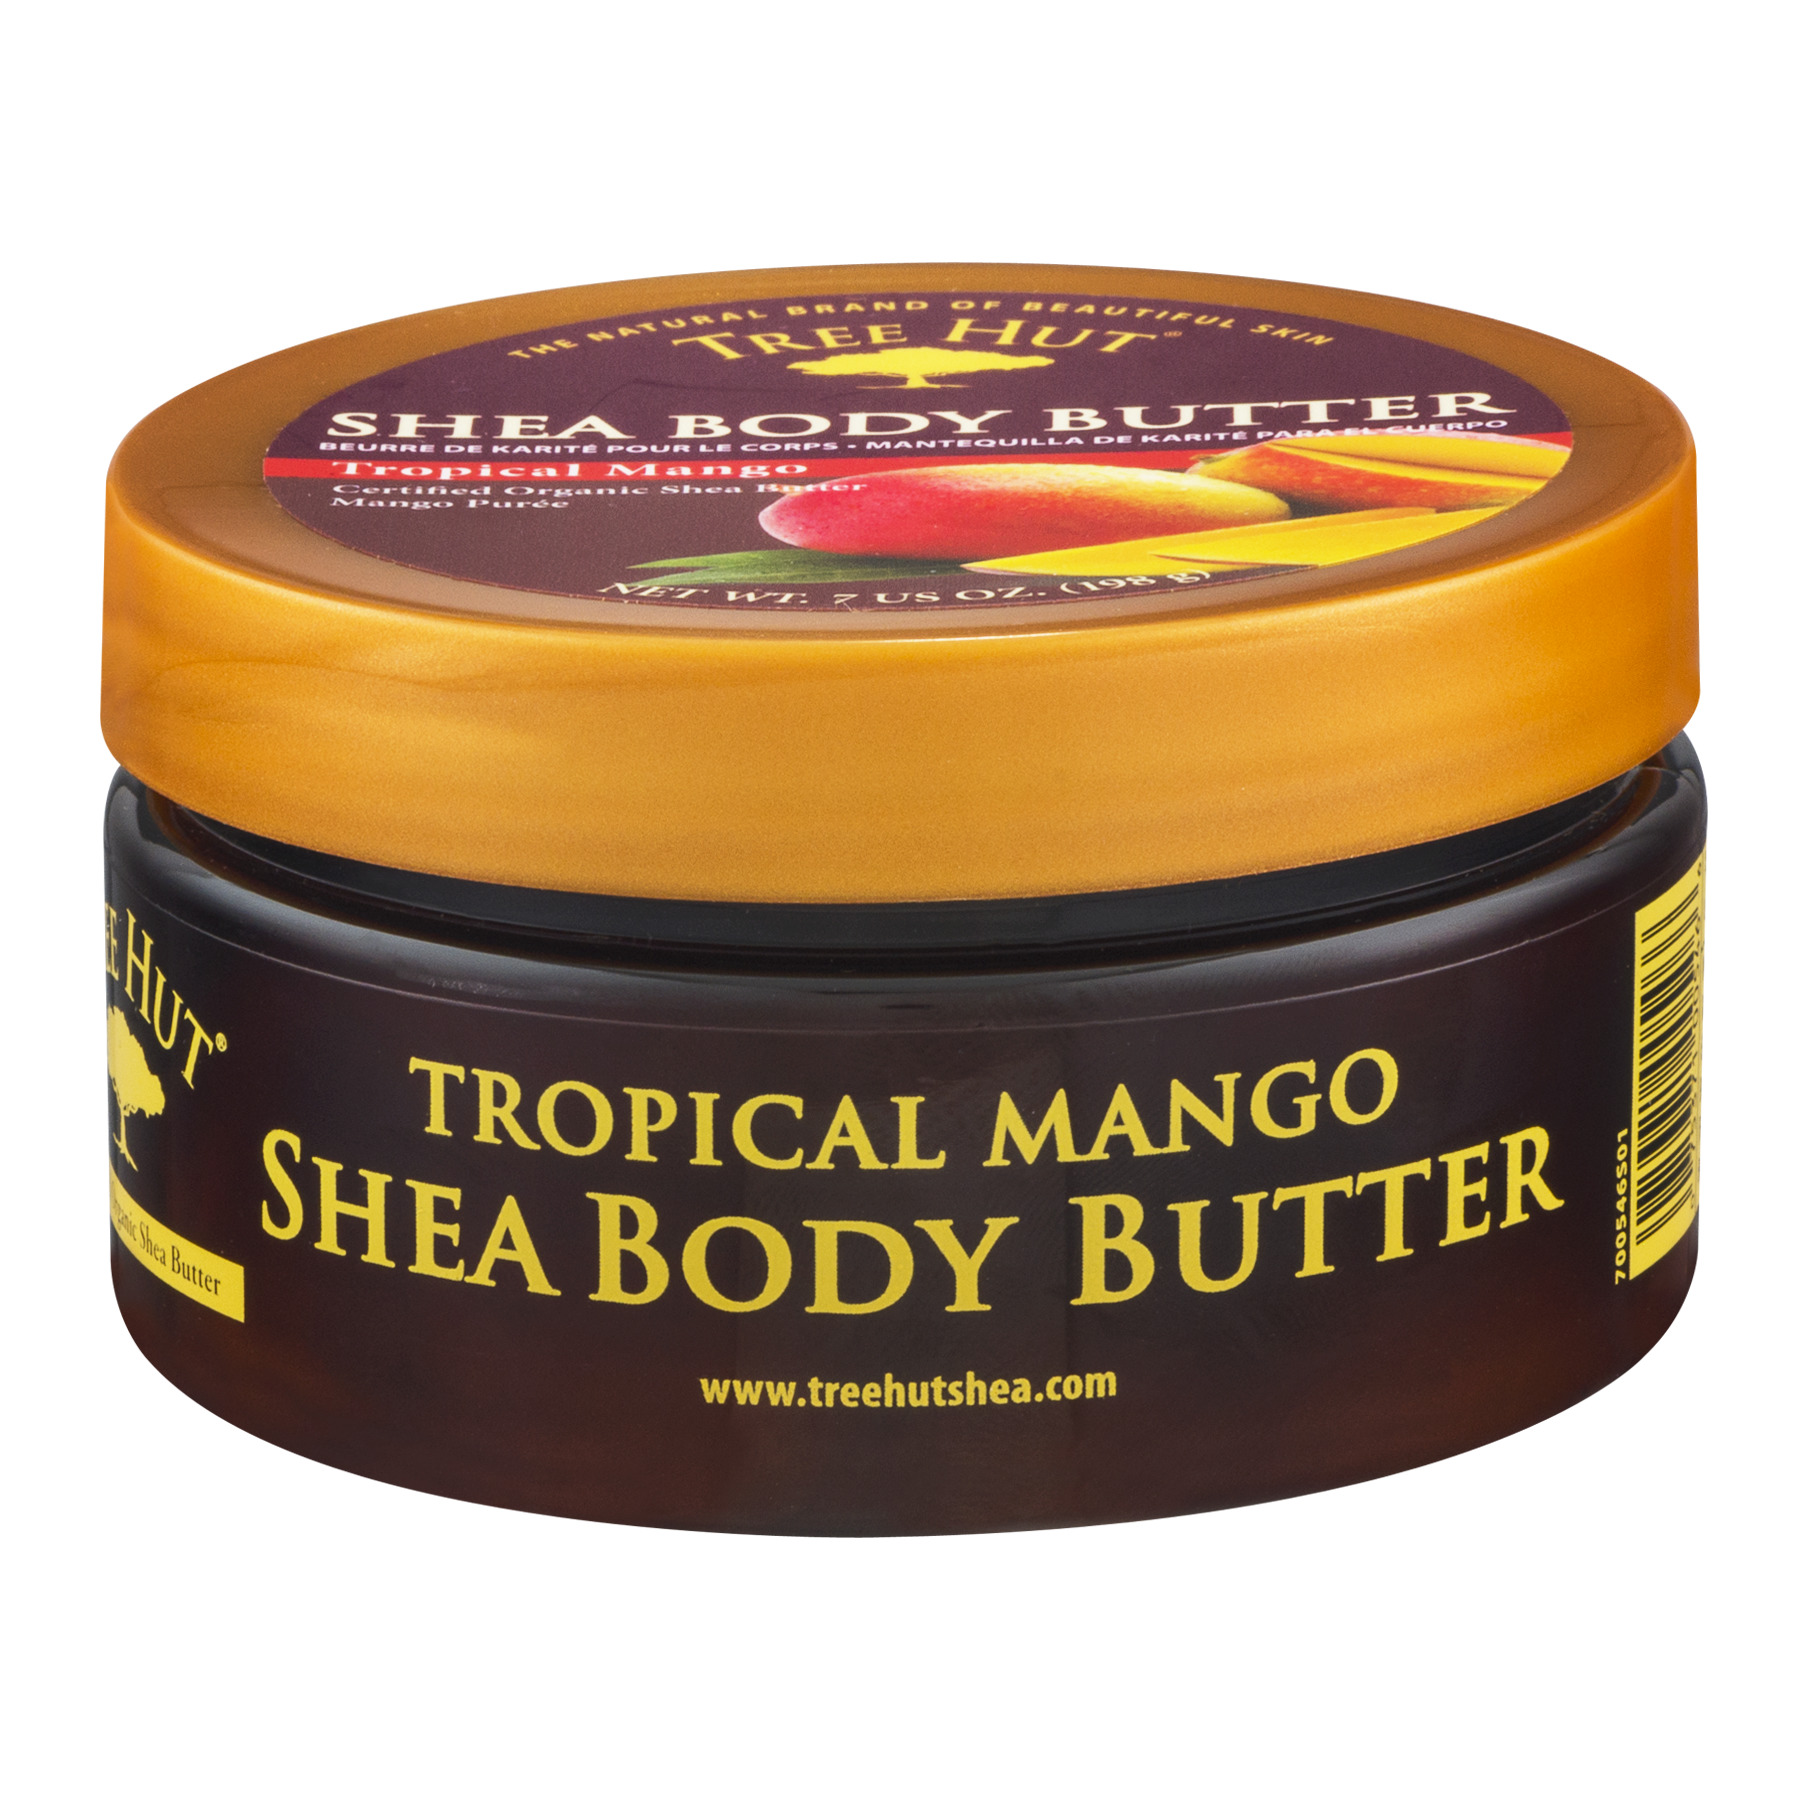 Tree Hut Shea Body Butter Tropical Mango, 7.0 OZ